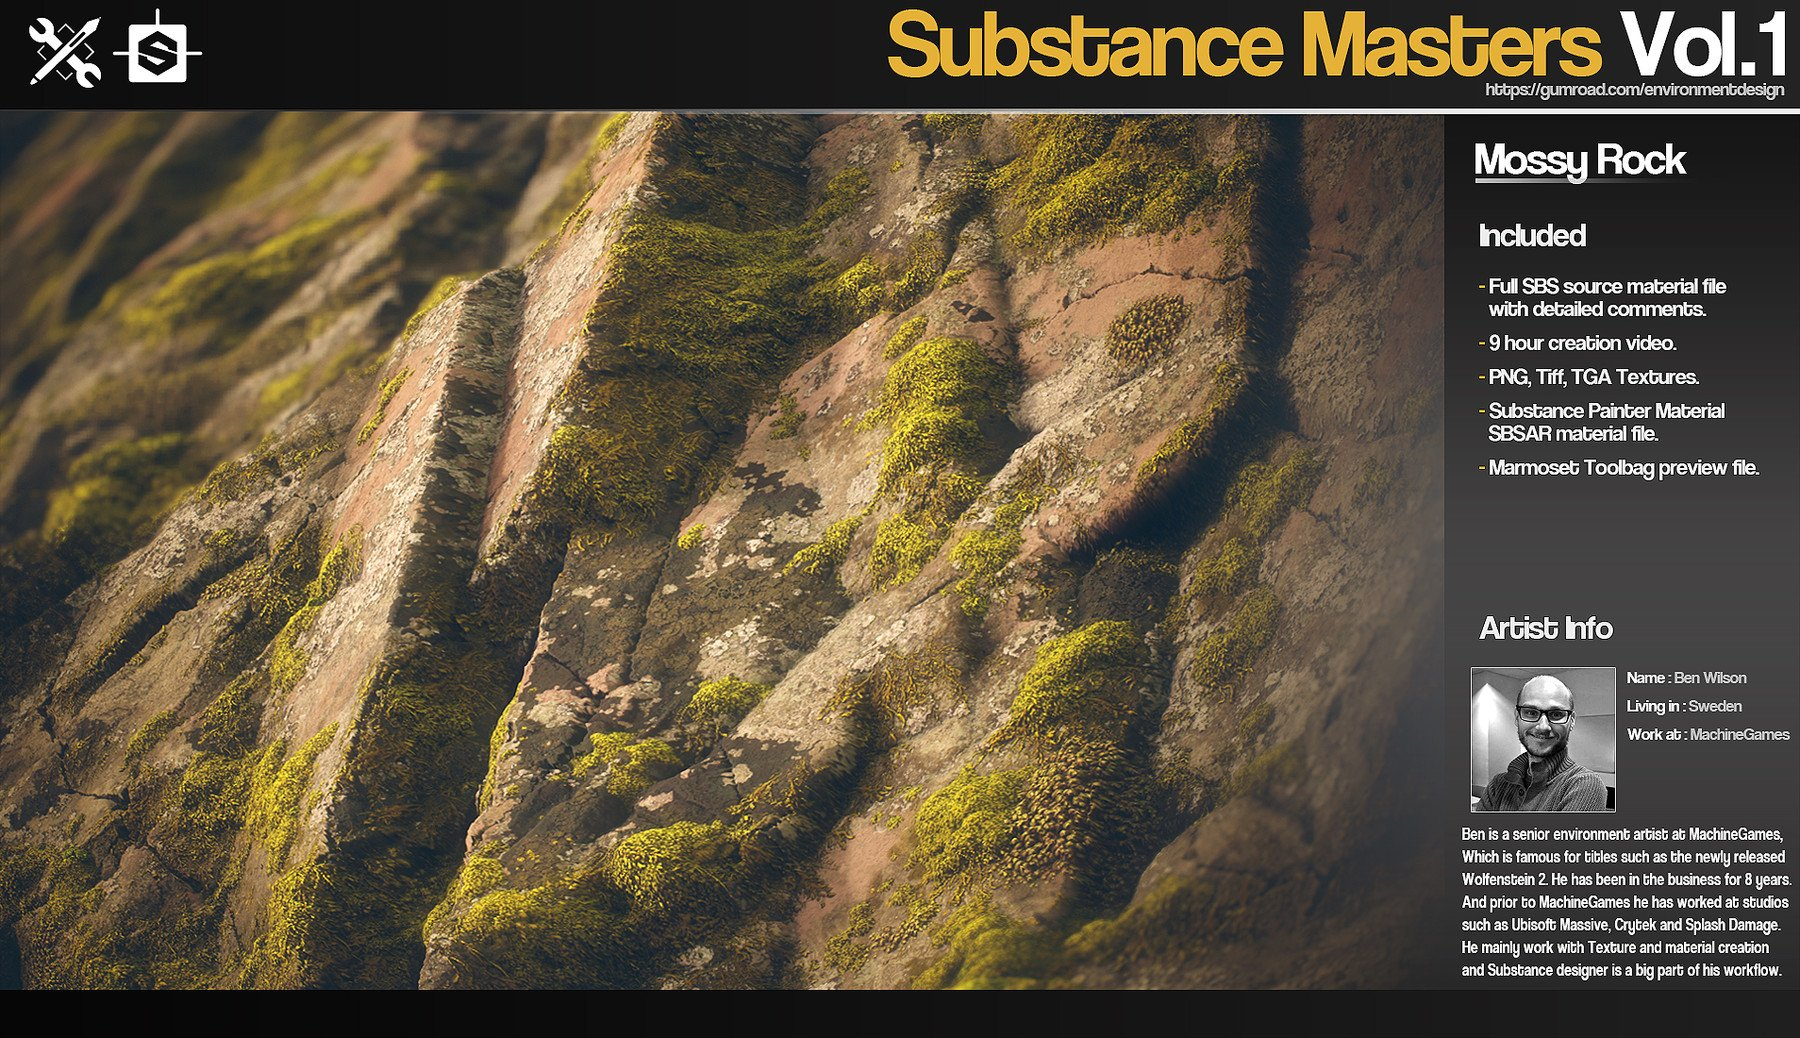 JROTools - Tools for 3D artists - Substance Masters Vol 1